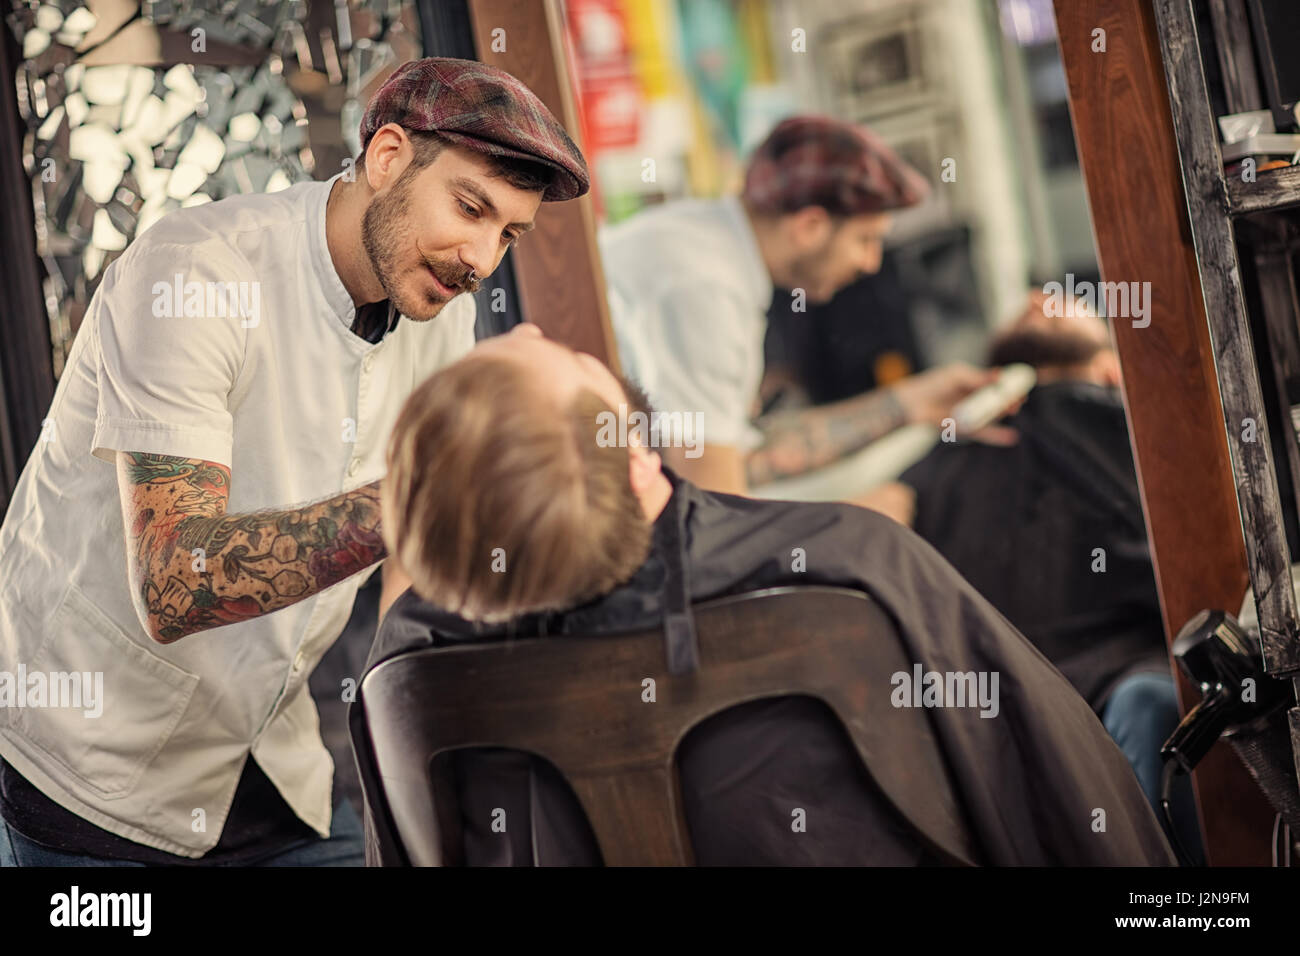 professional skillful barber shaving beard on customer - Stock Image